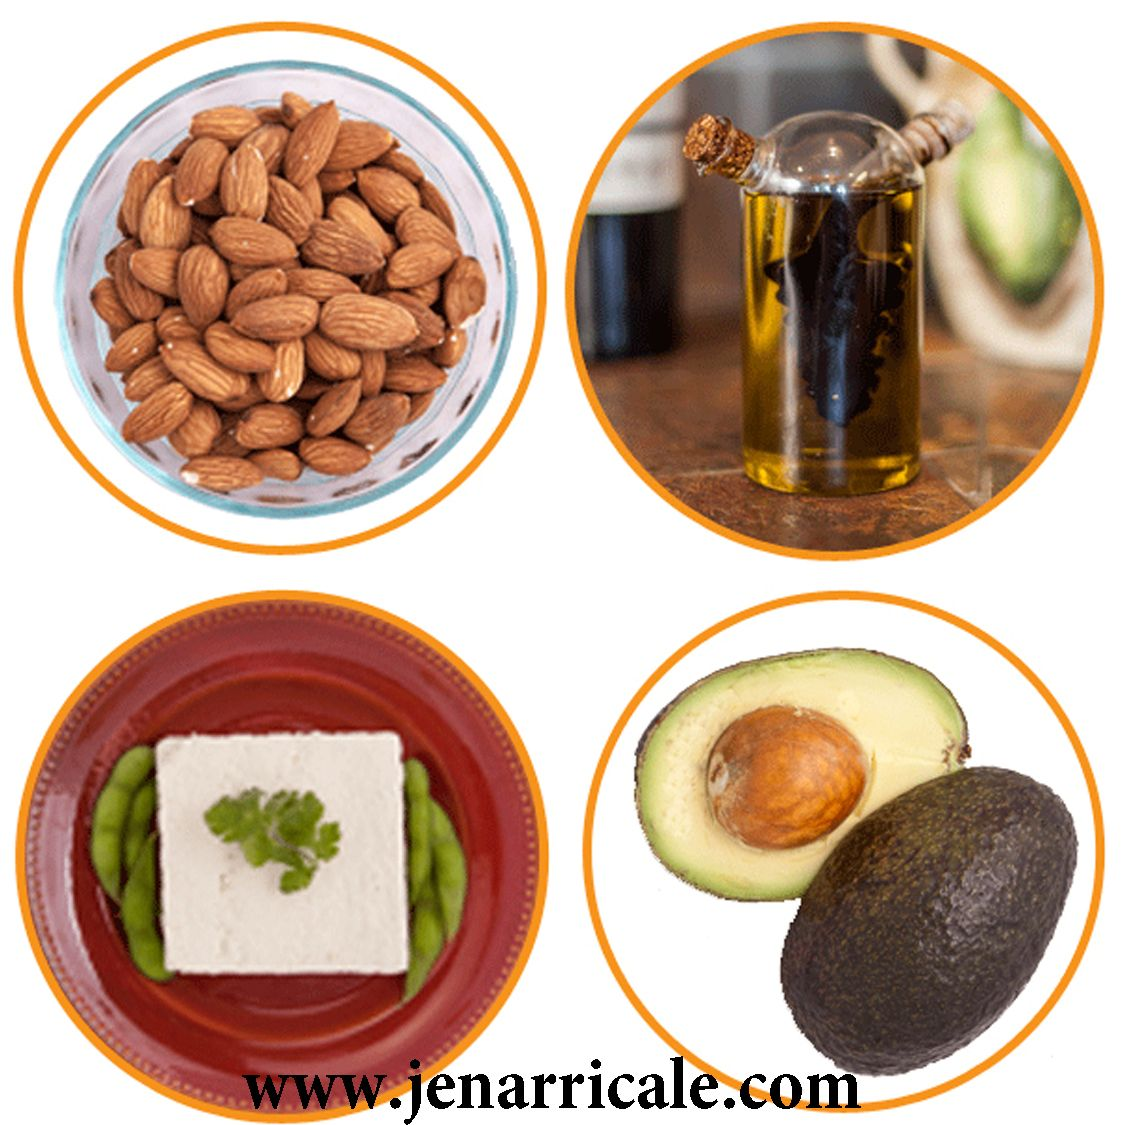 Top 5 Healthy Fat Facts  Like many food headlines, the topic of healthy fats can be confusing and frustrating to understand.  While there are thousands of studies on this topic, here are 5 facts which I believe are the most important ones to know about fats to make the right choices: